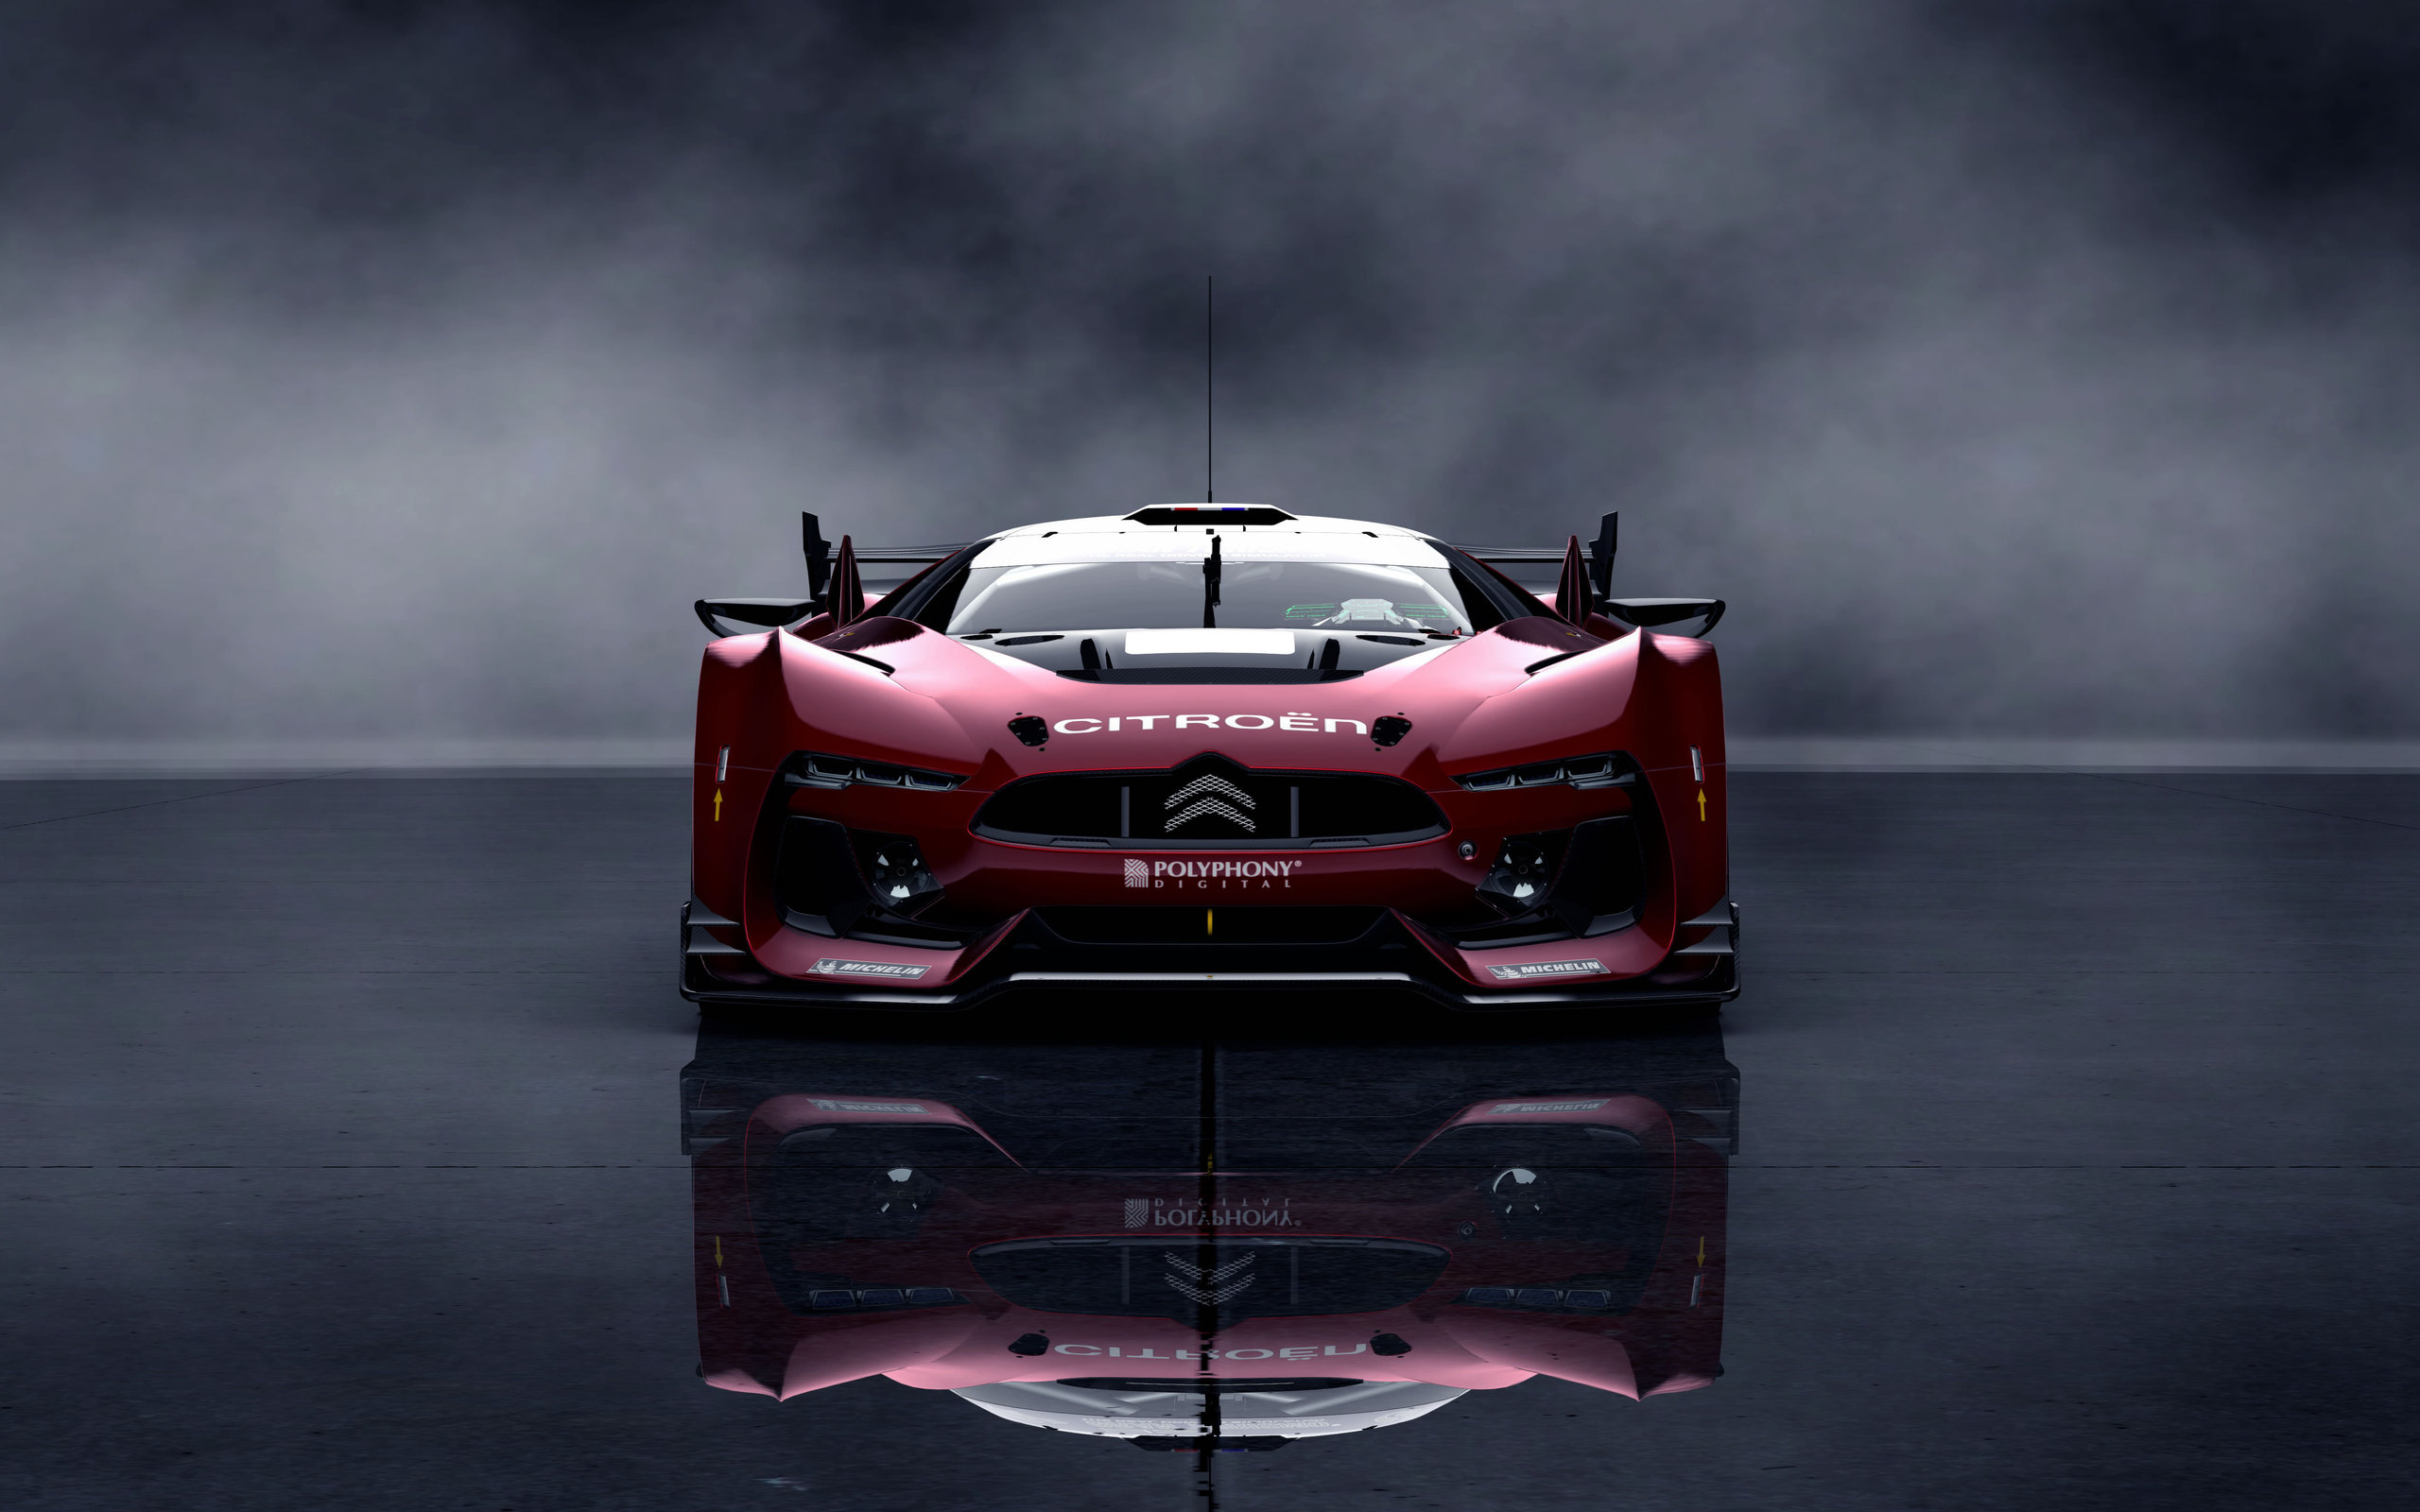 539 Gran Turismo HD Wallpapers Background Images 2560x1600